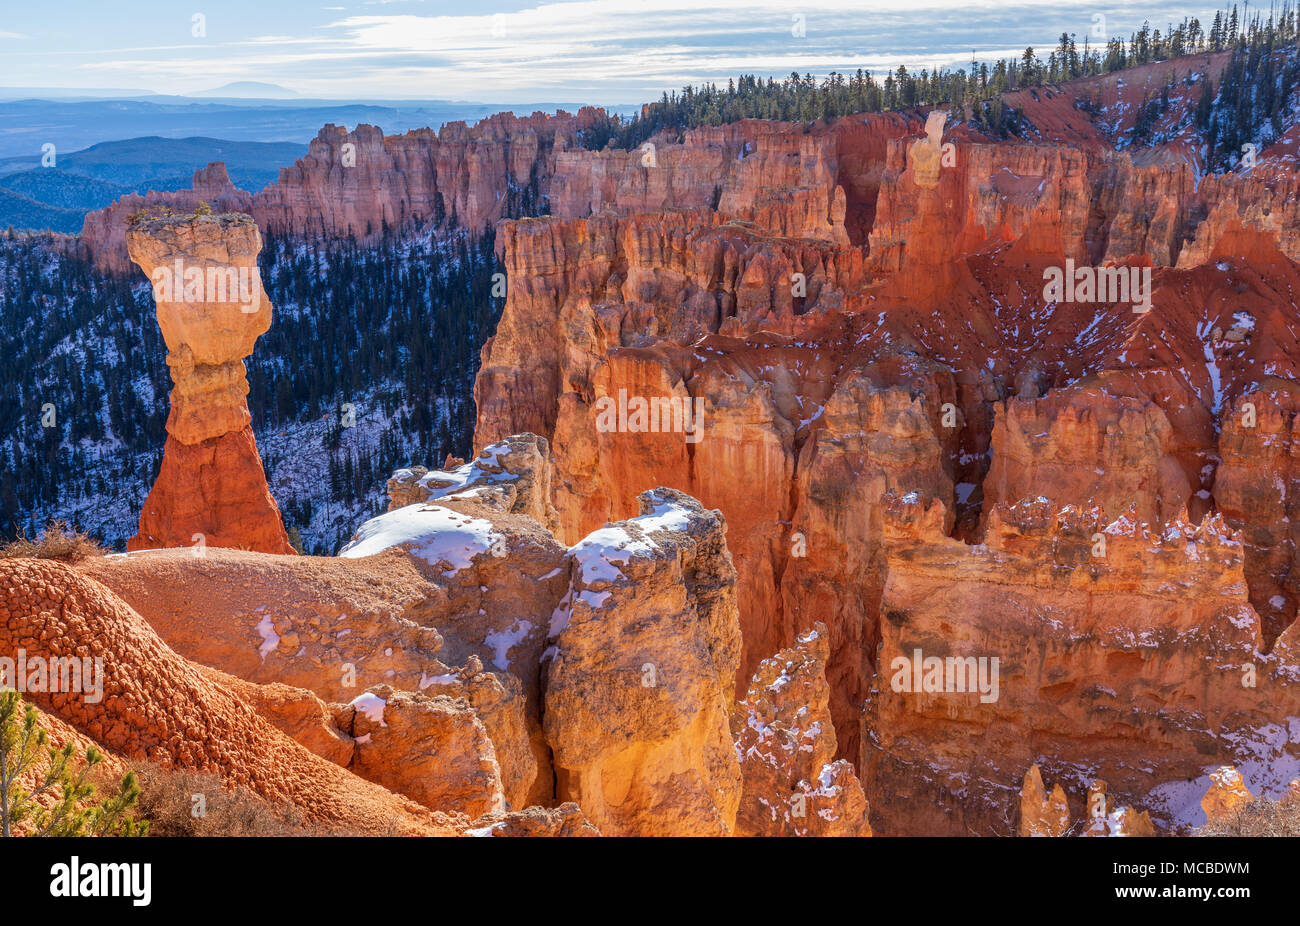 Scenic Bryce Canyon National Park Utah Landscape in Winter - Stock Image